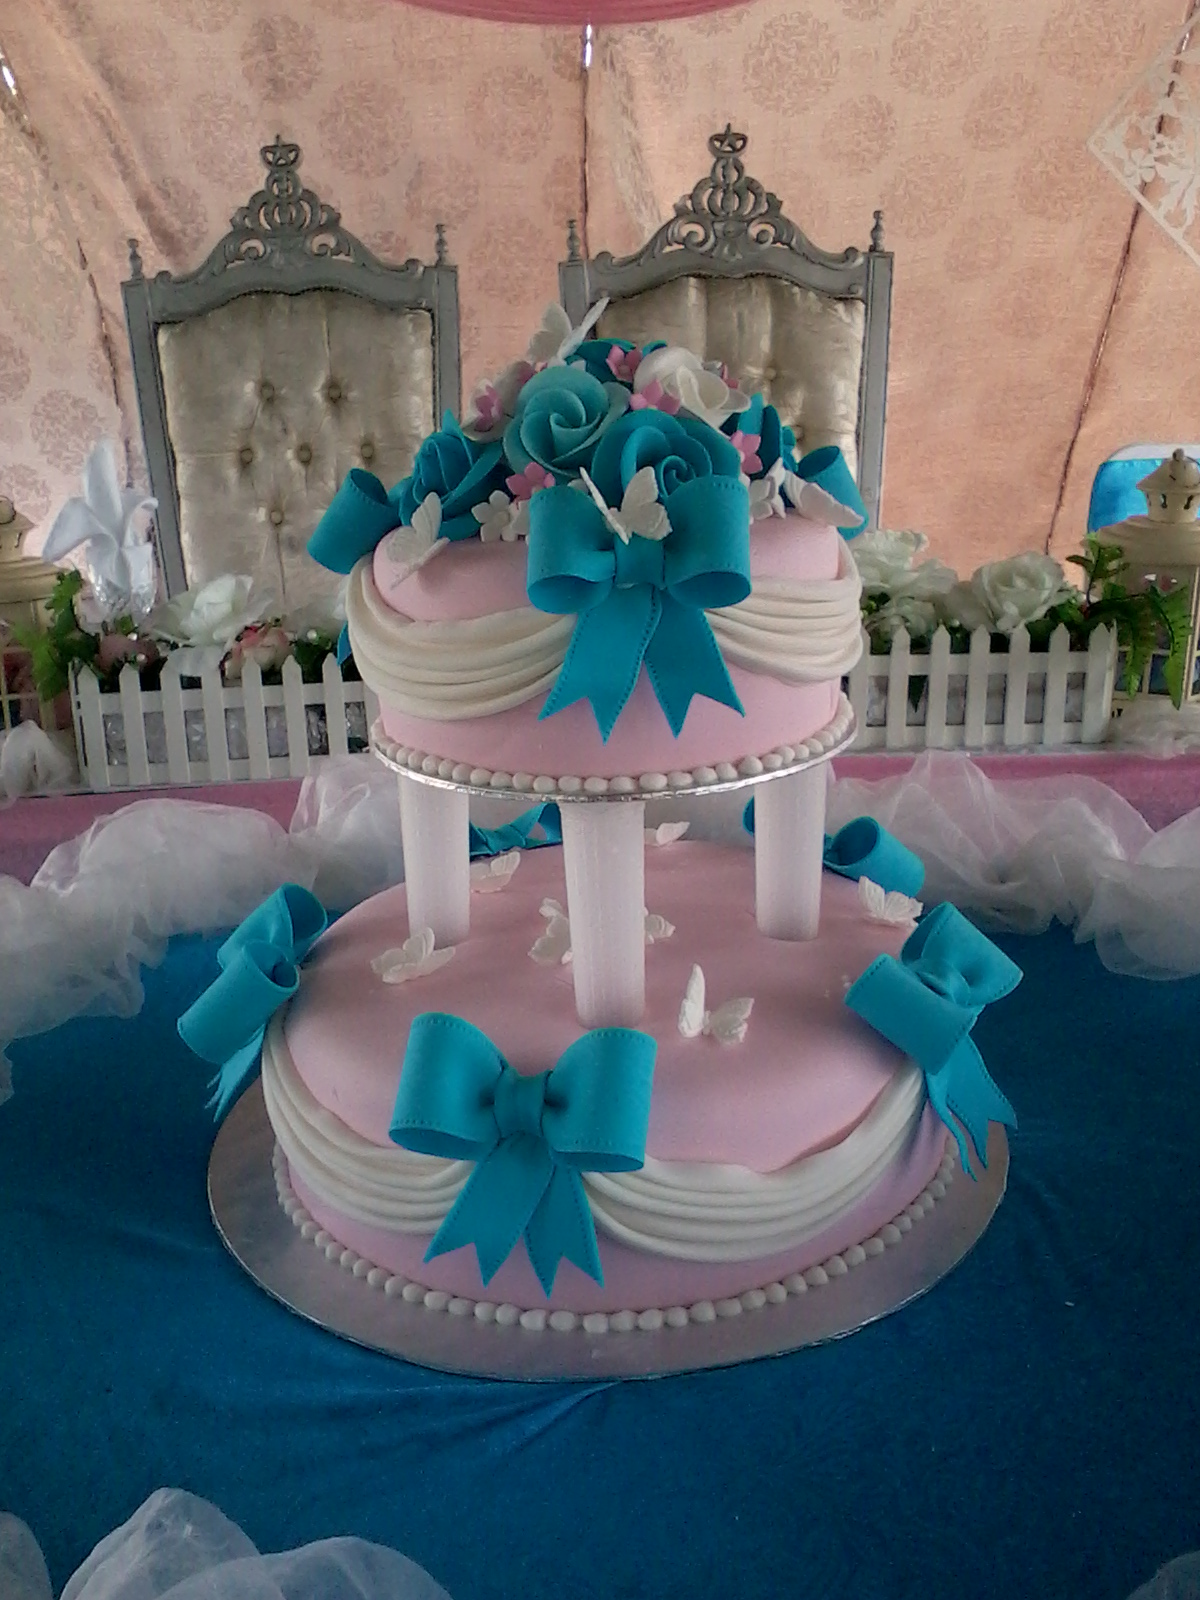 jujucupcakes pink and turquoise wedding cake. Black Bedroom Furniture Sets. Home Design Ideas